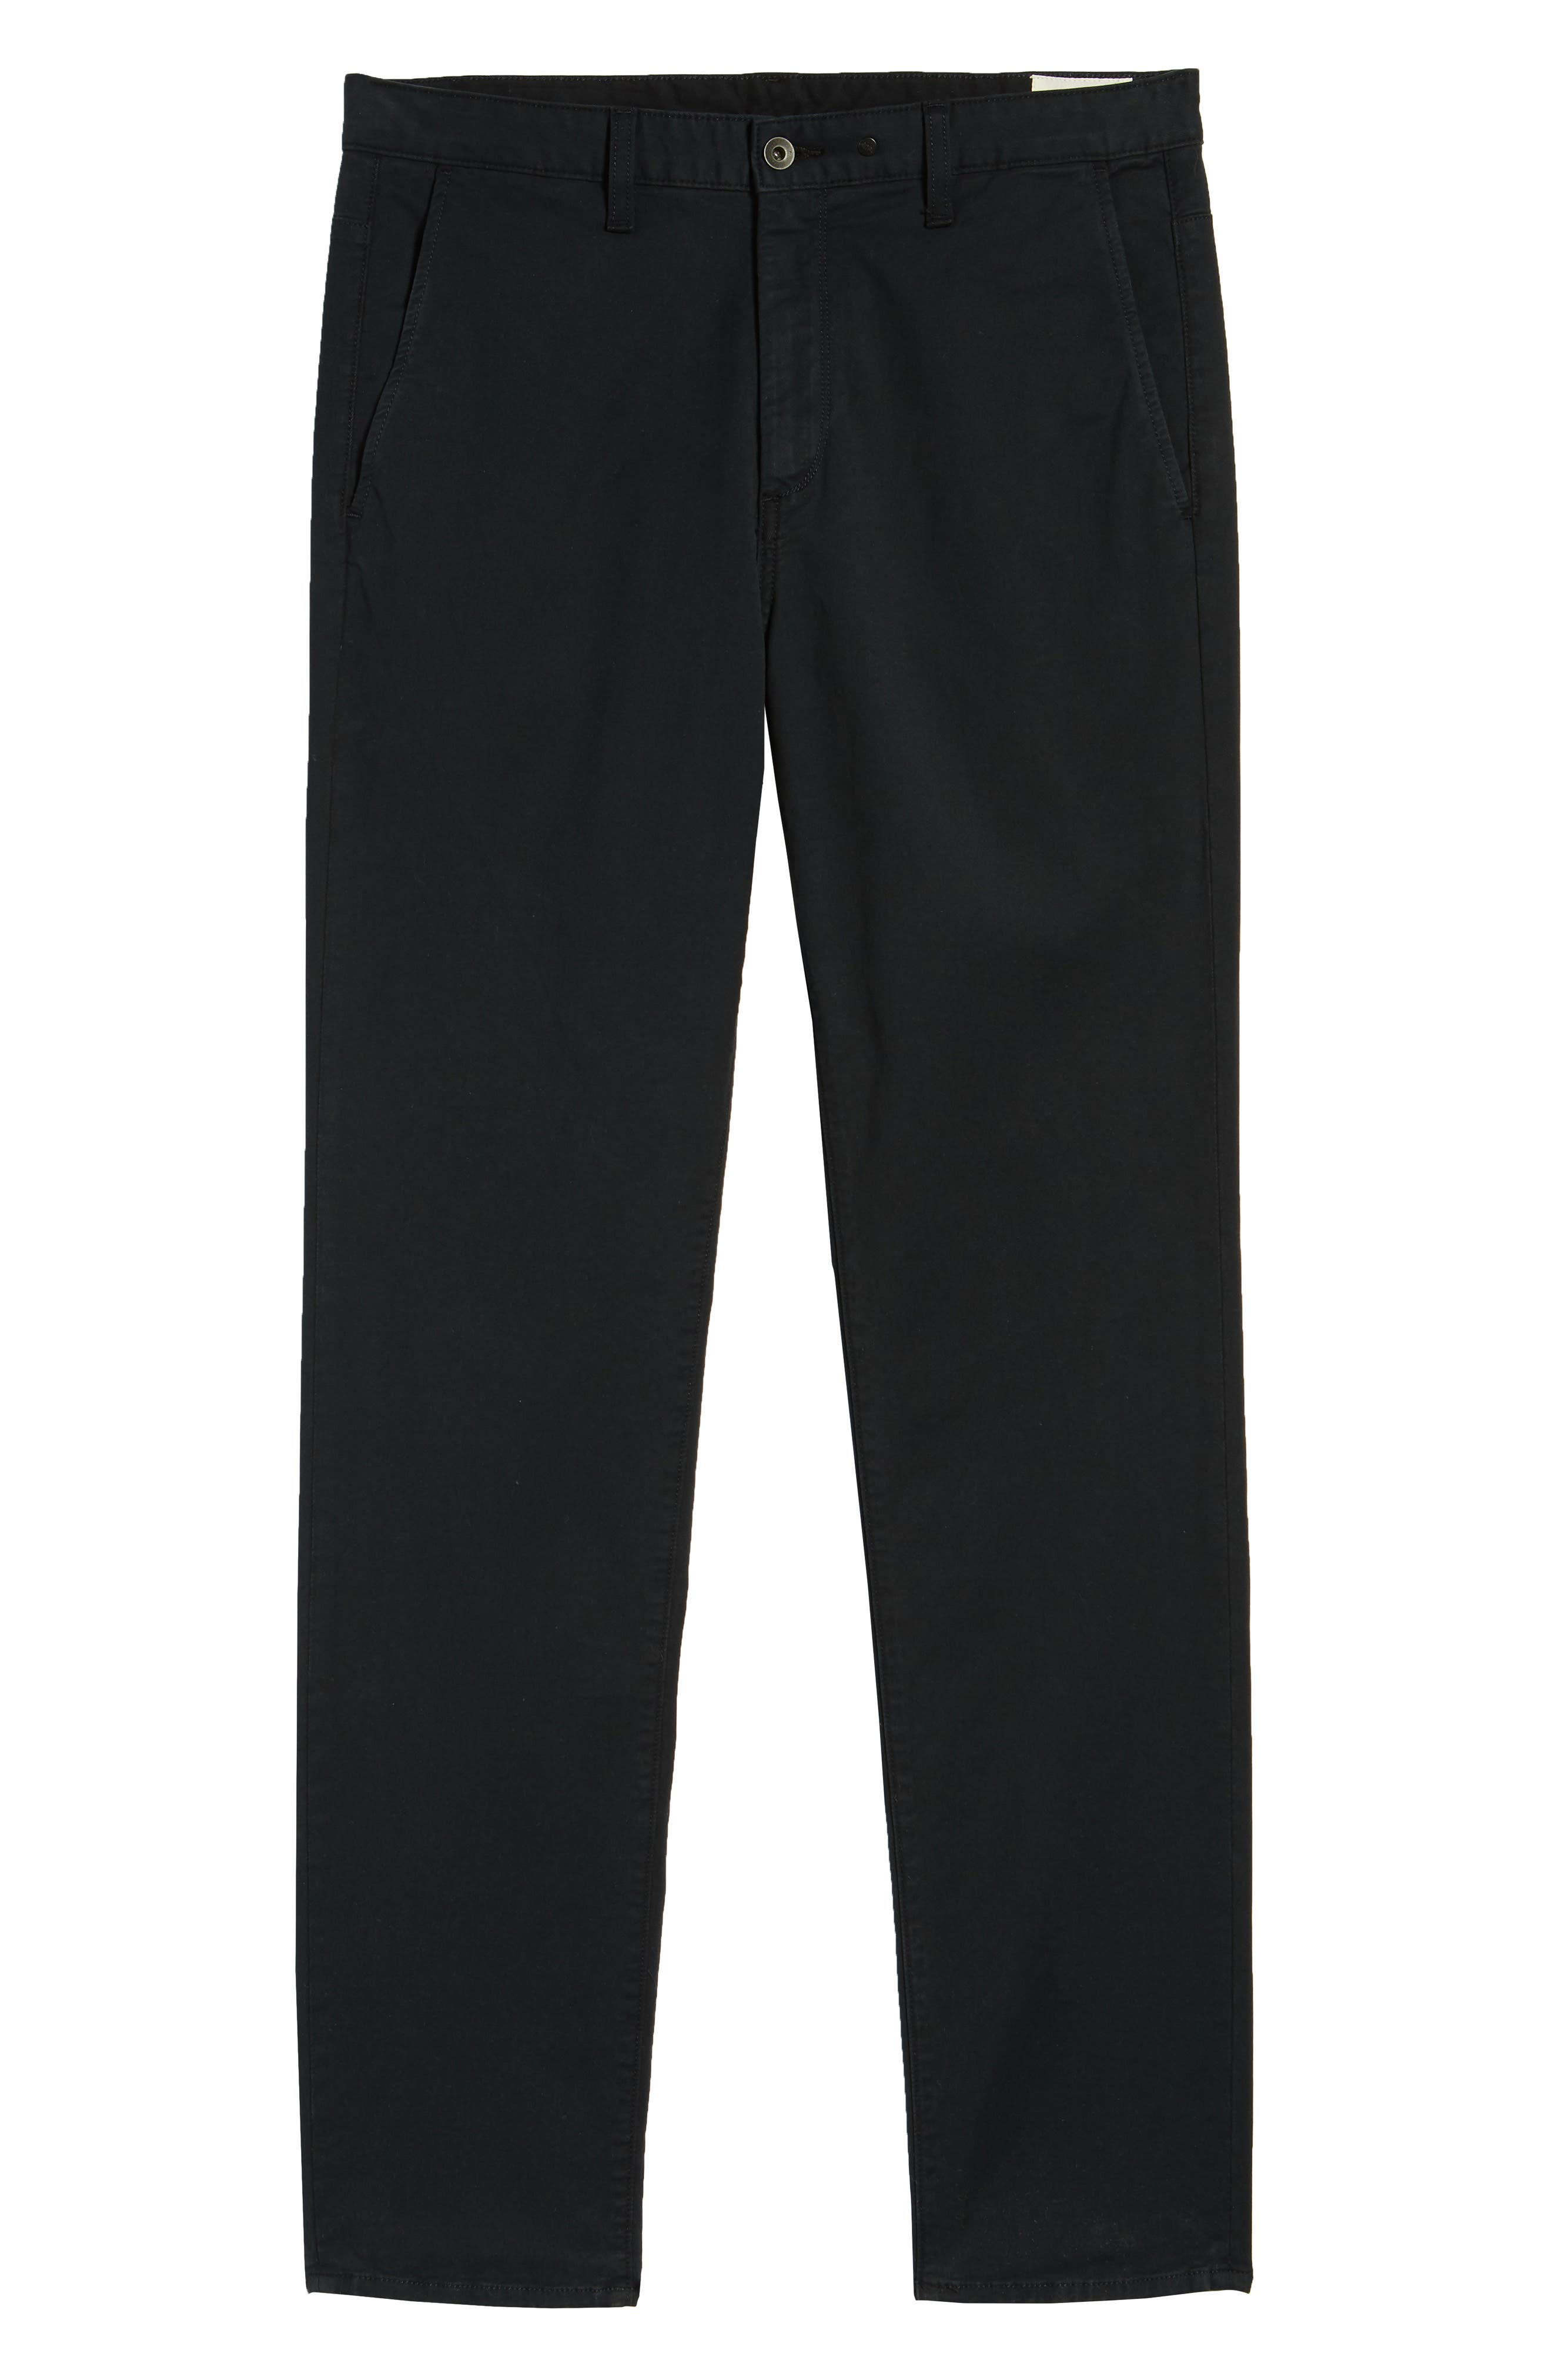 Fit 3 Classic Chino,                             Alternate thumbnail 6, color,                             NAVY